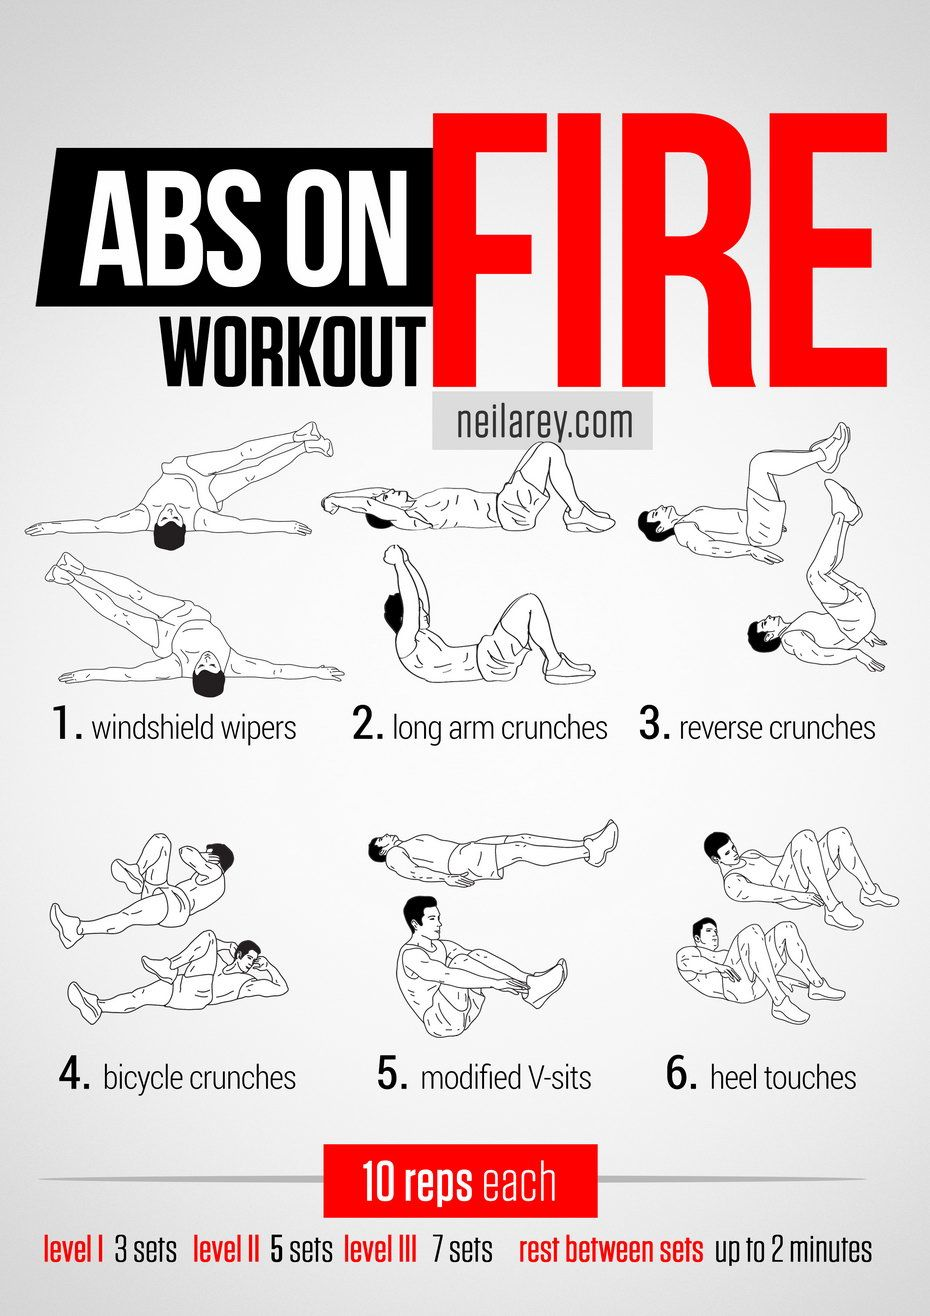 Abs On Fire Workout Visual Guides For Full Bodyweight No Equipment Training